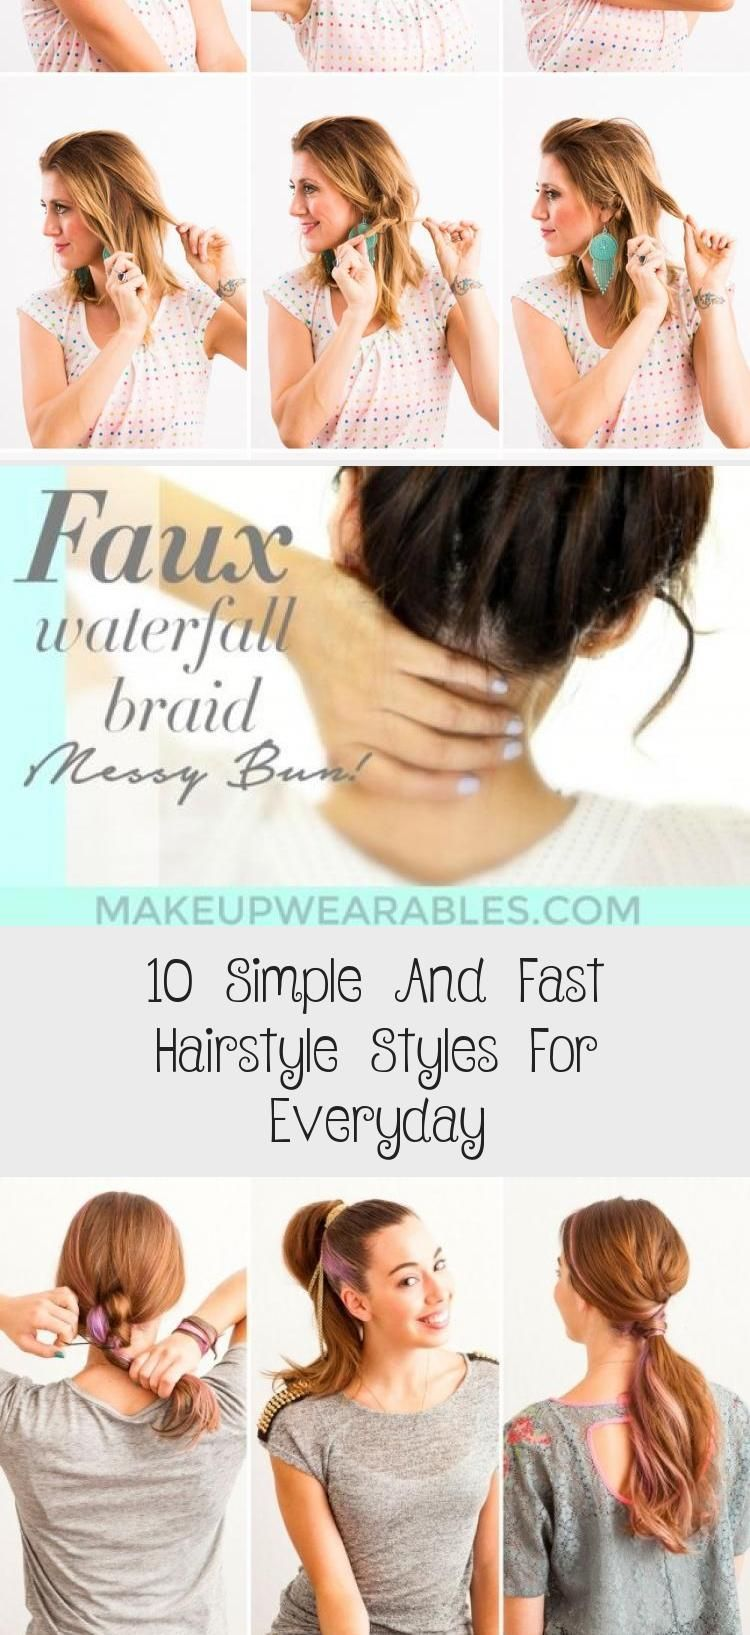 10 Simple And Fast Hairstyle Styles For Everyday Best Hairstyles 10 Simple And Fast Hairstyle Styles F In 2020 Fast Hairstyles Cool Hairstyles Everyday Hairstyles